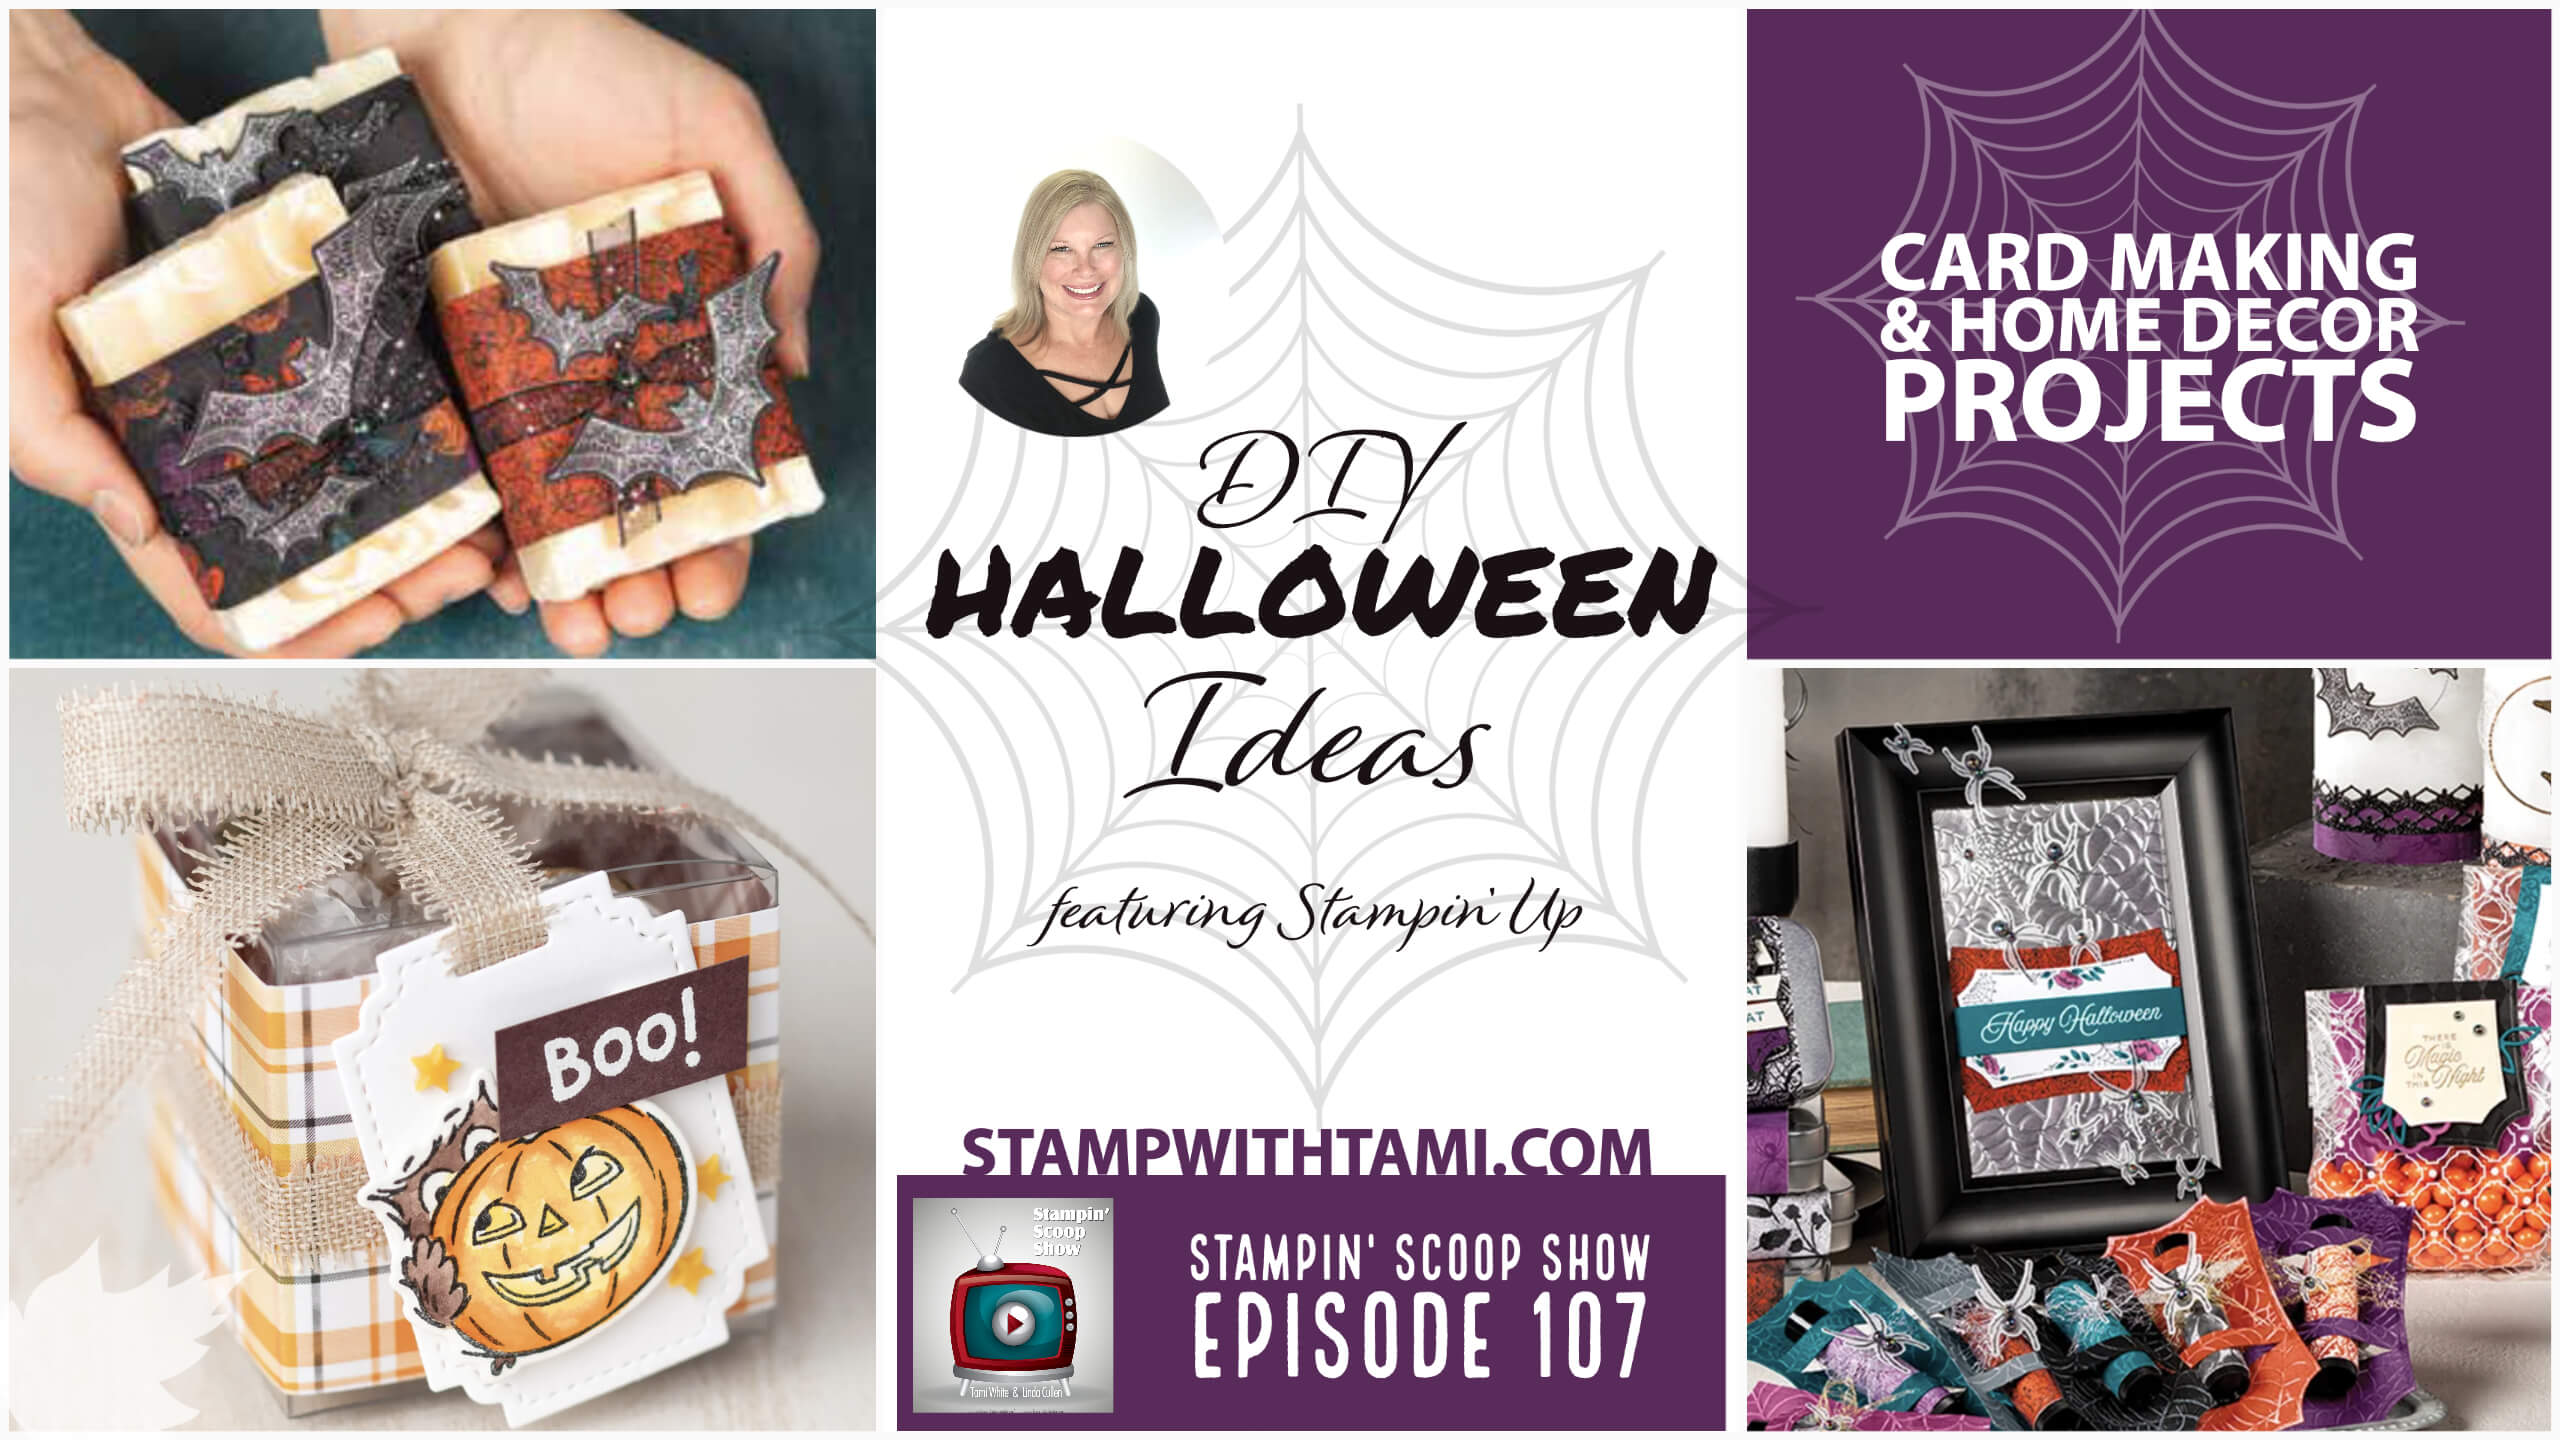 DIY Halloween Carfting Ideas